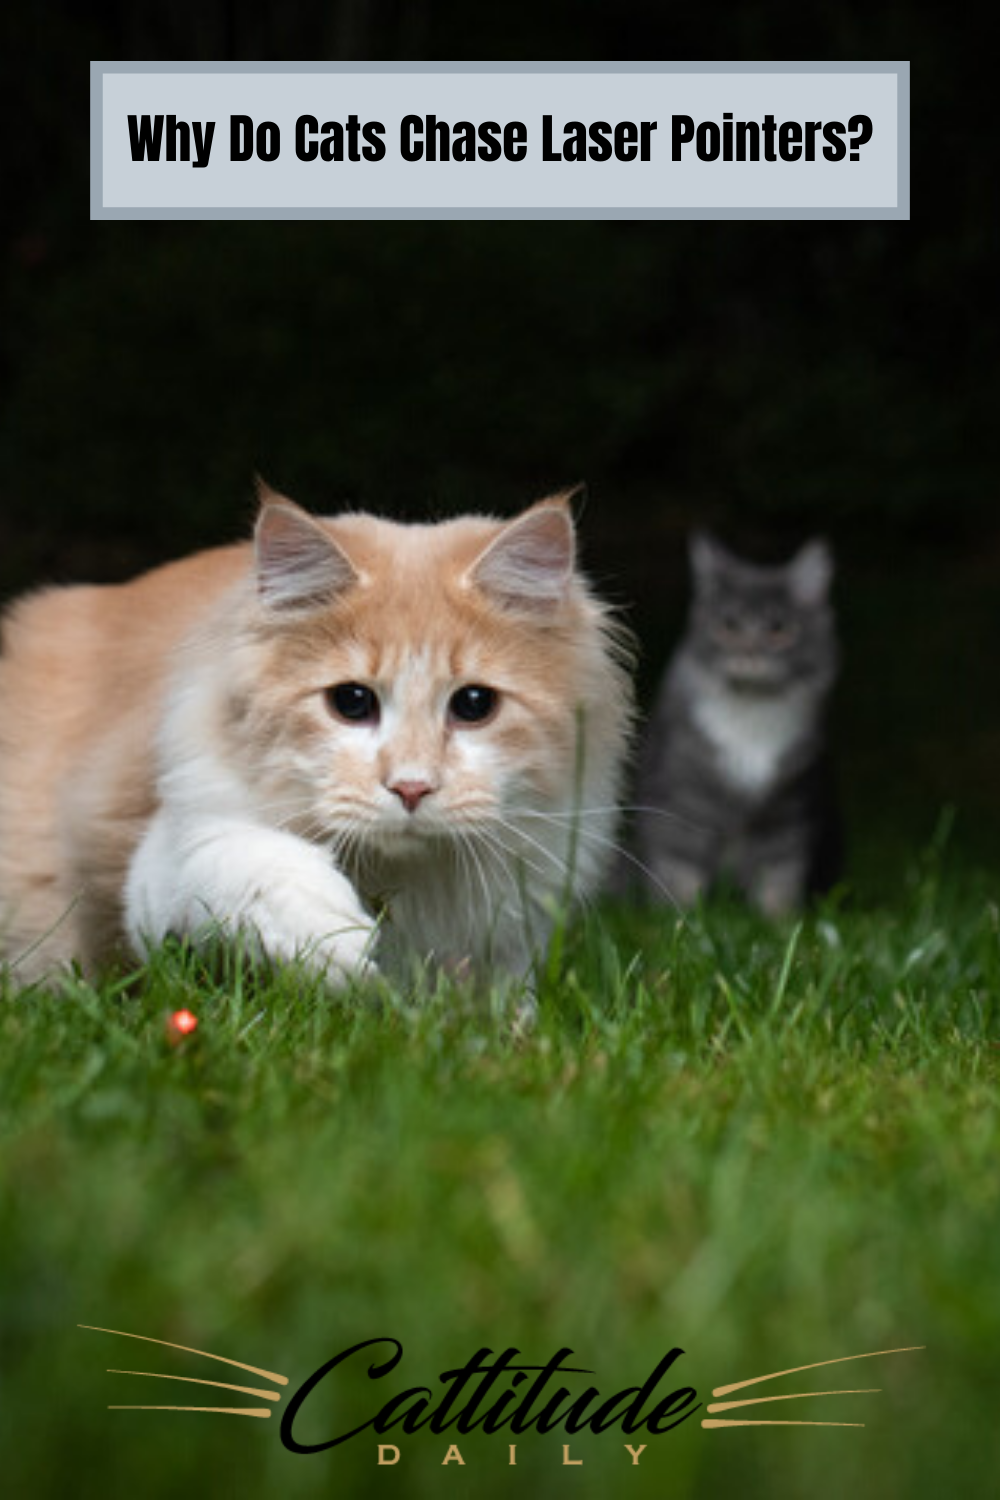 Why Do Cats Chase Laser Pointers In 2020 Cats Cat Facts Cat Behavior